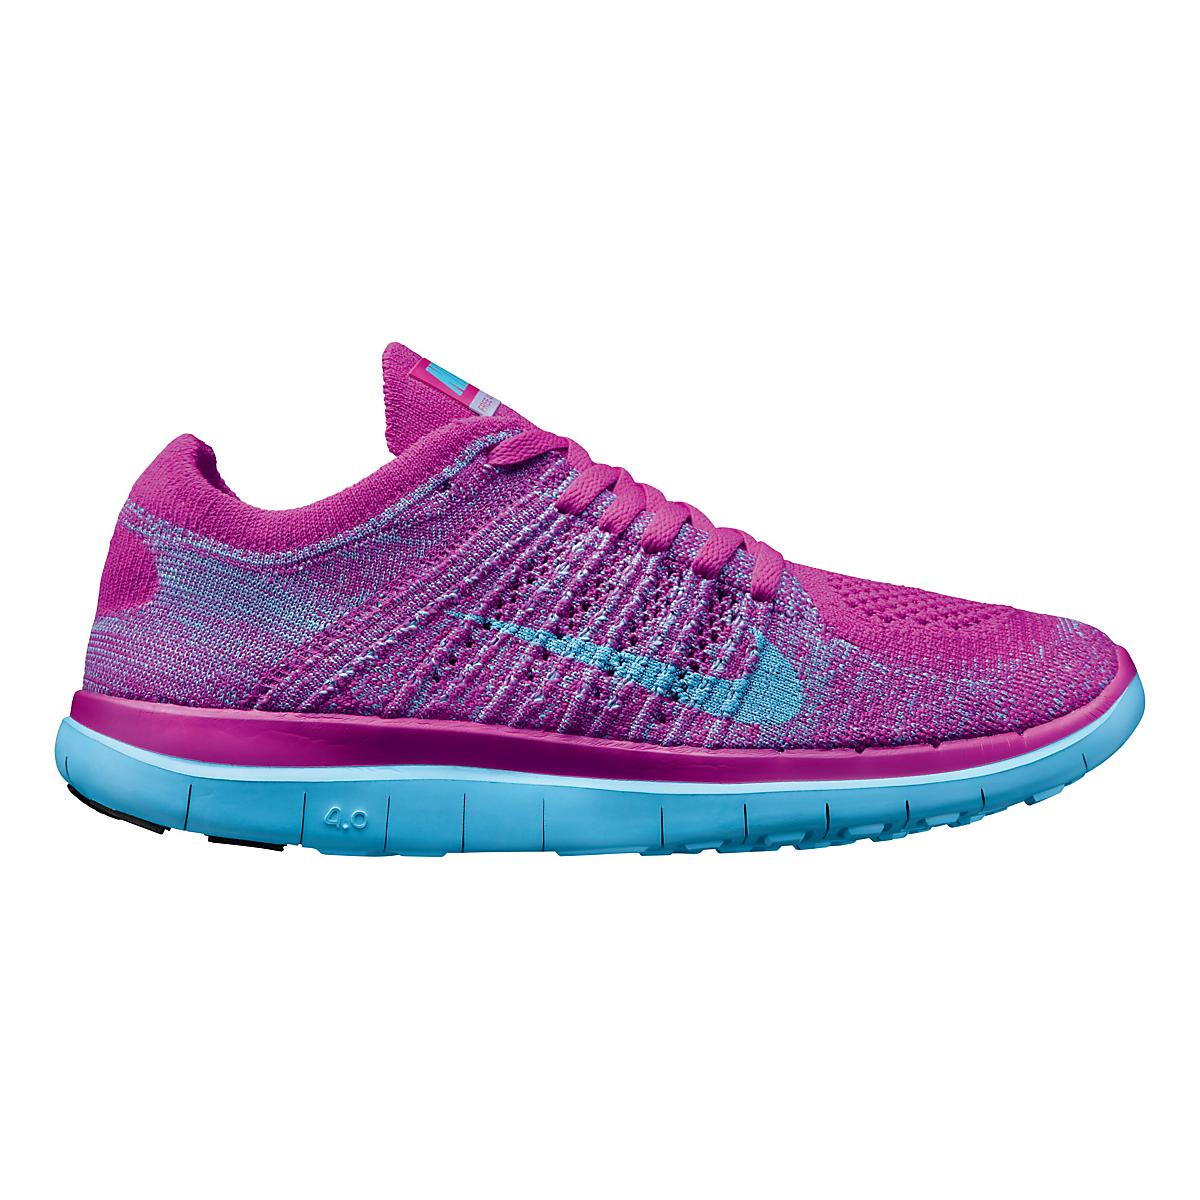 Womens Nike Free 4.0 Flyknit Running Shoe at Road Runner Spo